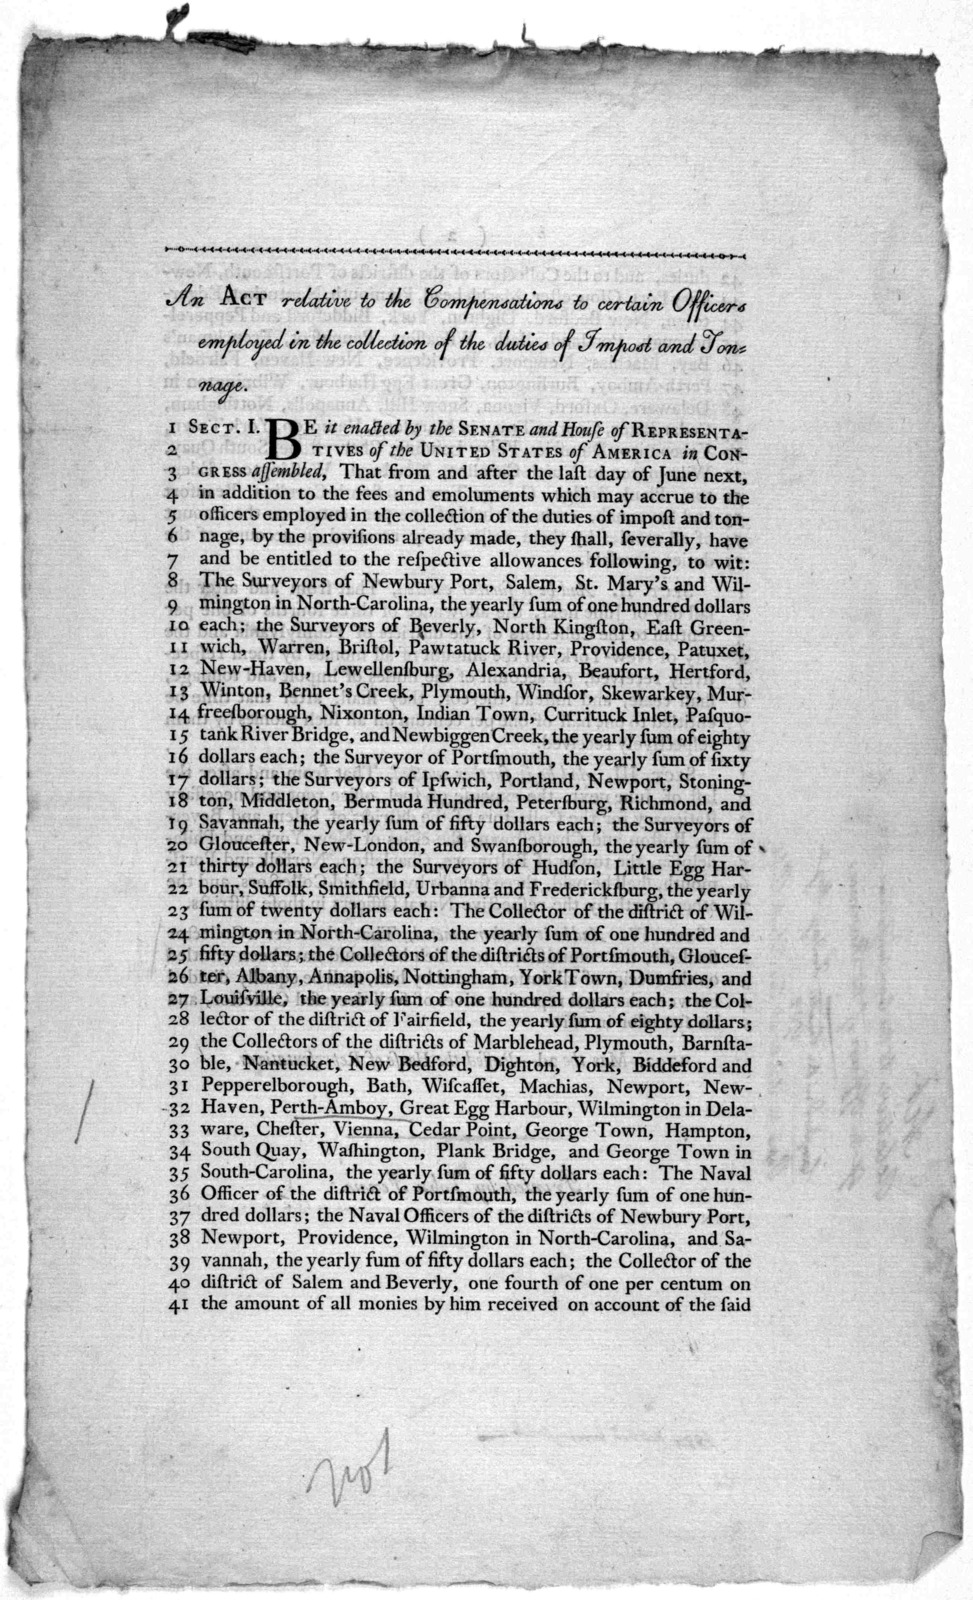 An act relative to the compensations to certain officers employed in the collection of the duties of impost and tonnage ... 1792, May the 2d- Passed the House of representatives. [Philadelphia] Printed by John Fenno [1792].